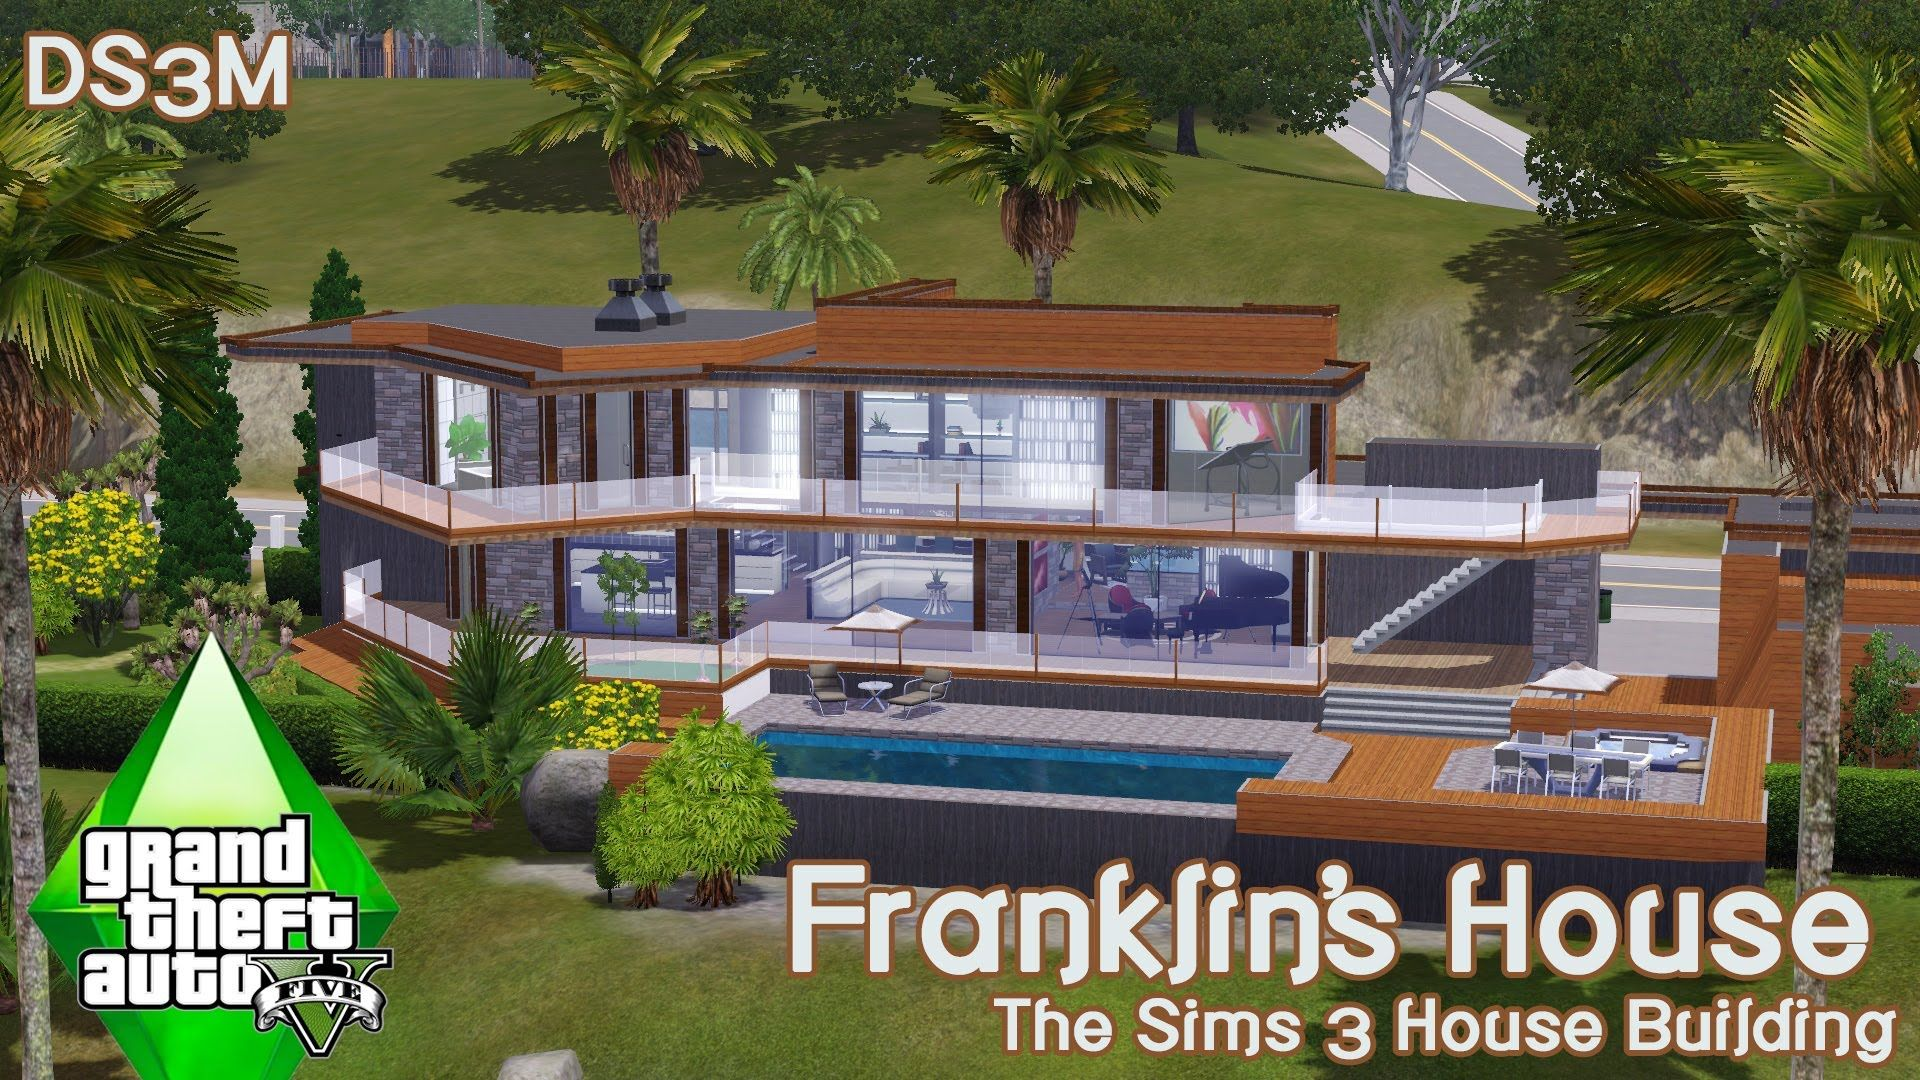 The Sims 3 House Building Franklin S House Gta V The